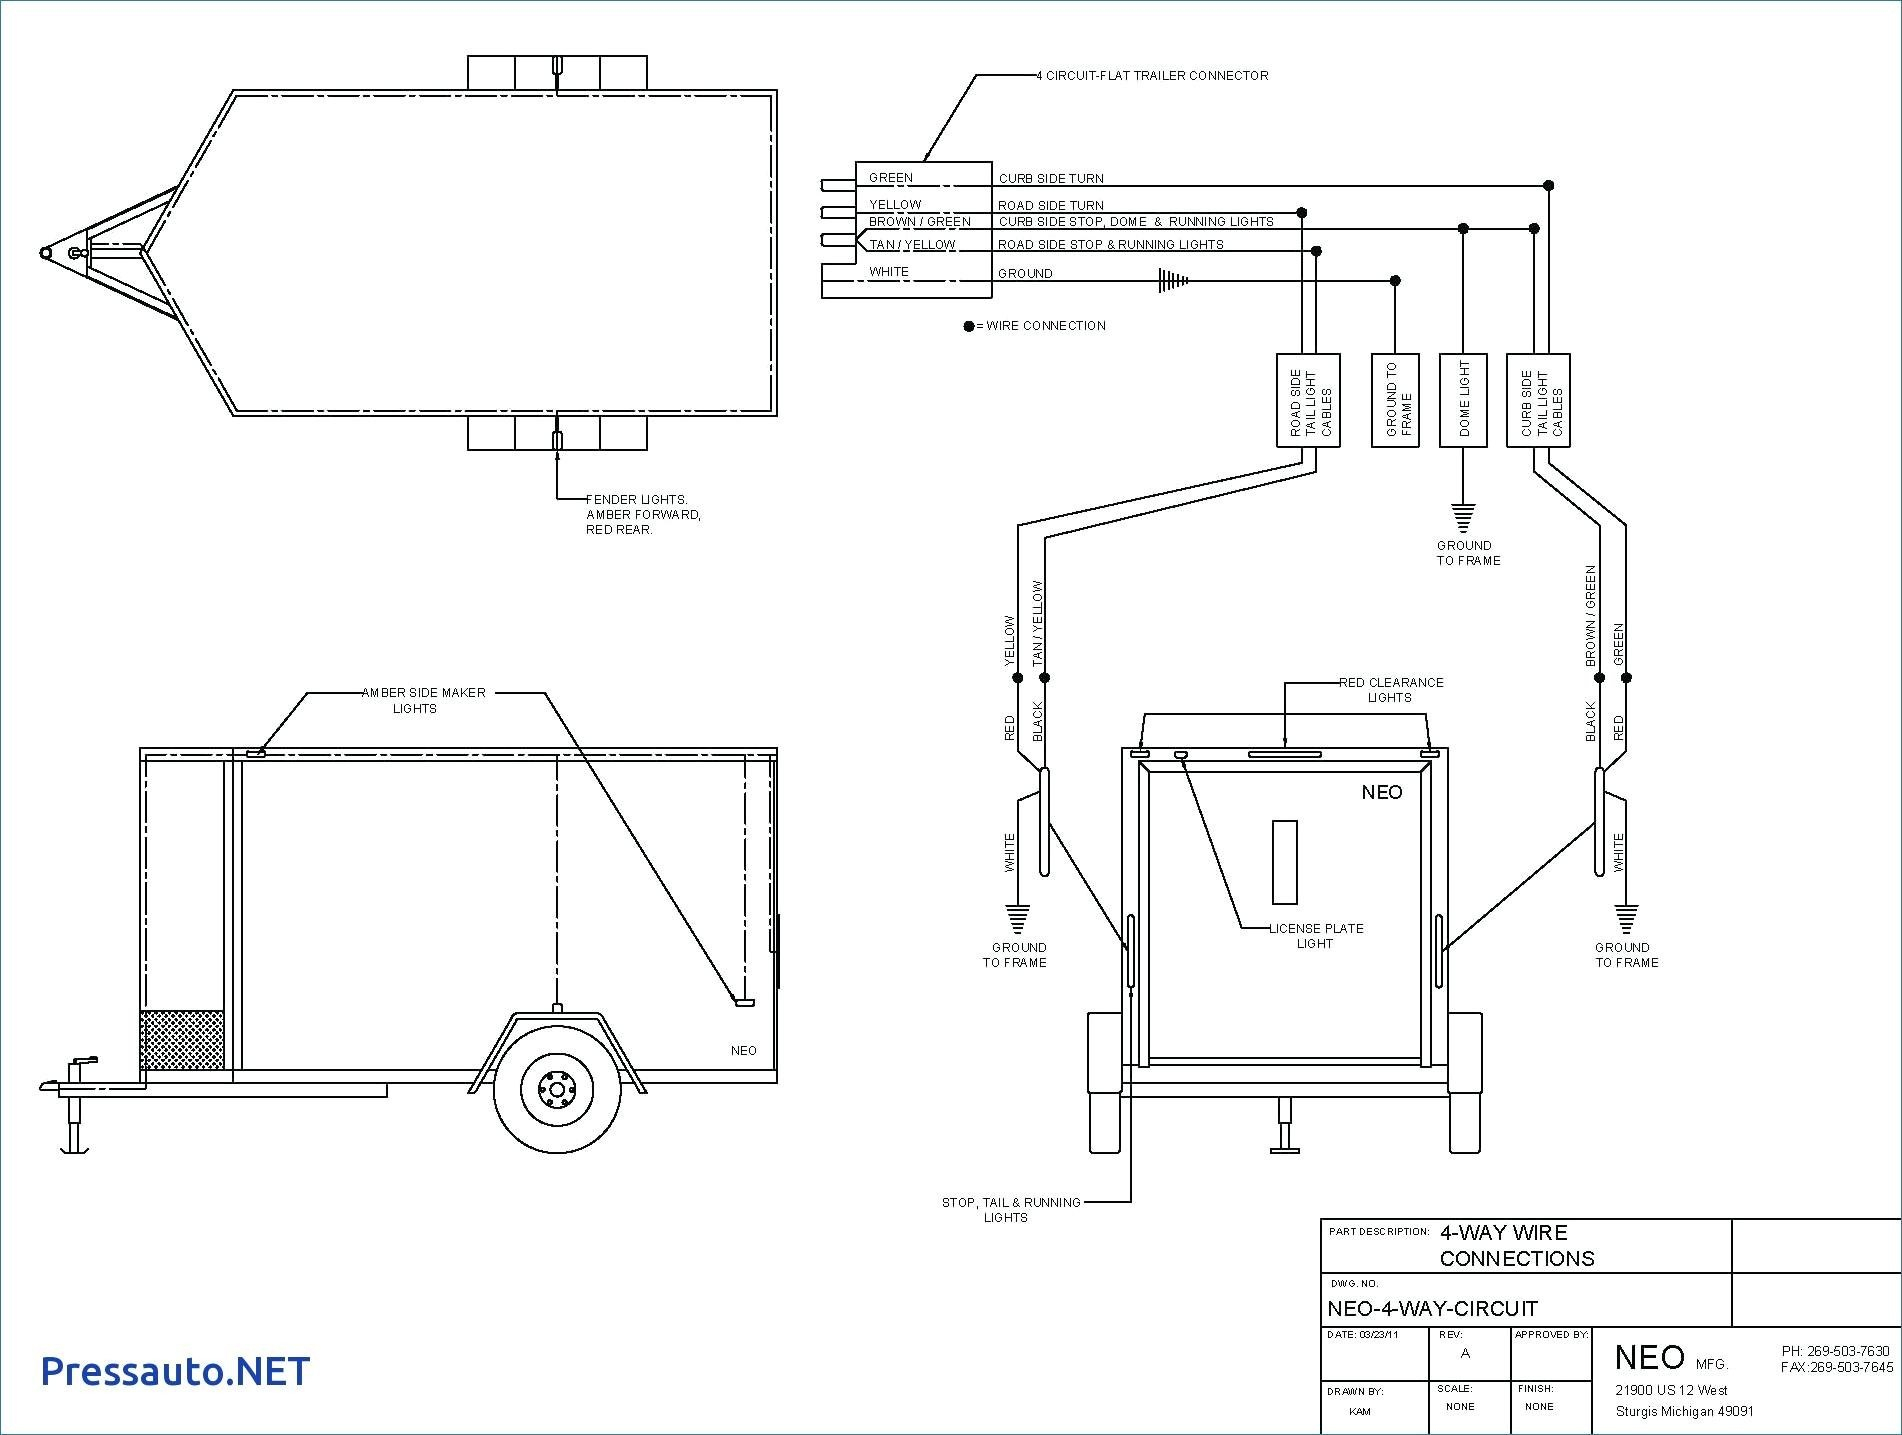 Belshe Trailer Wiring Diagram - Data Wiring Diagram Schematic - Diamond D Trailer Wiring Diagram